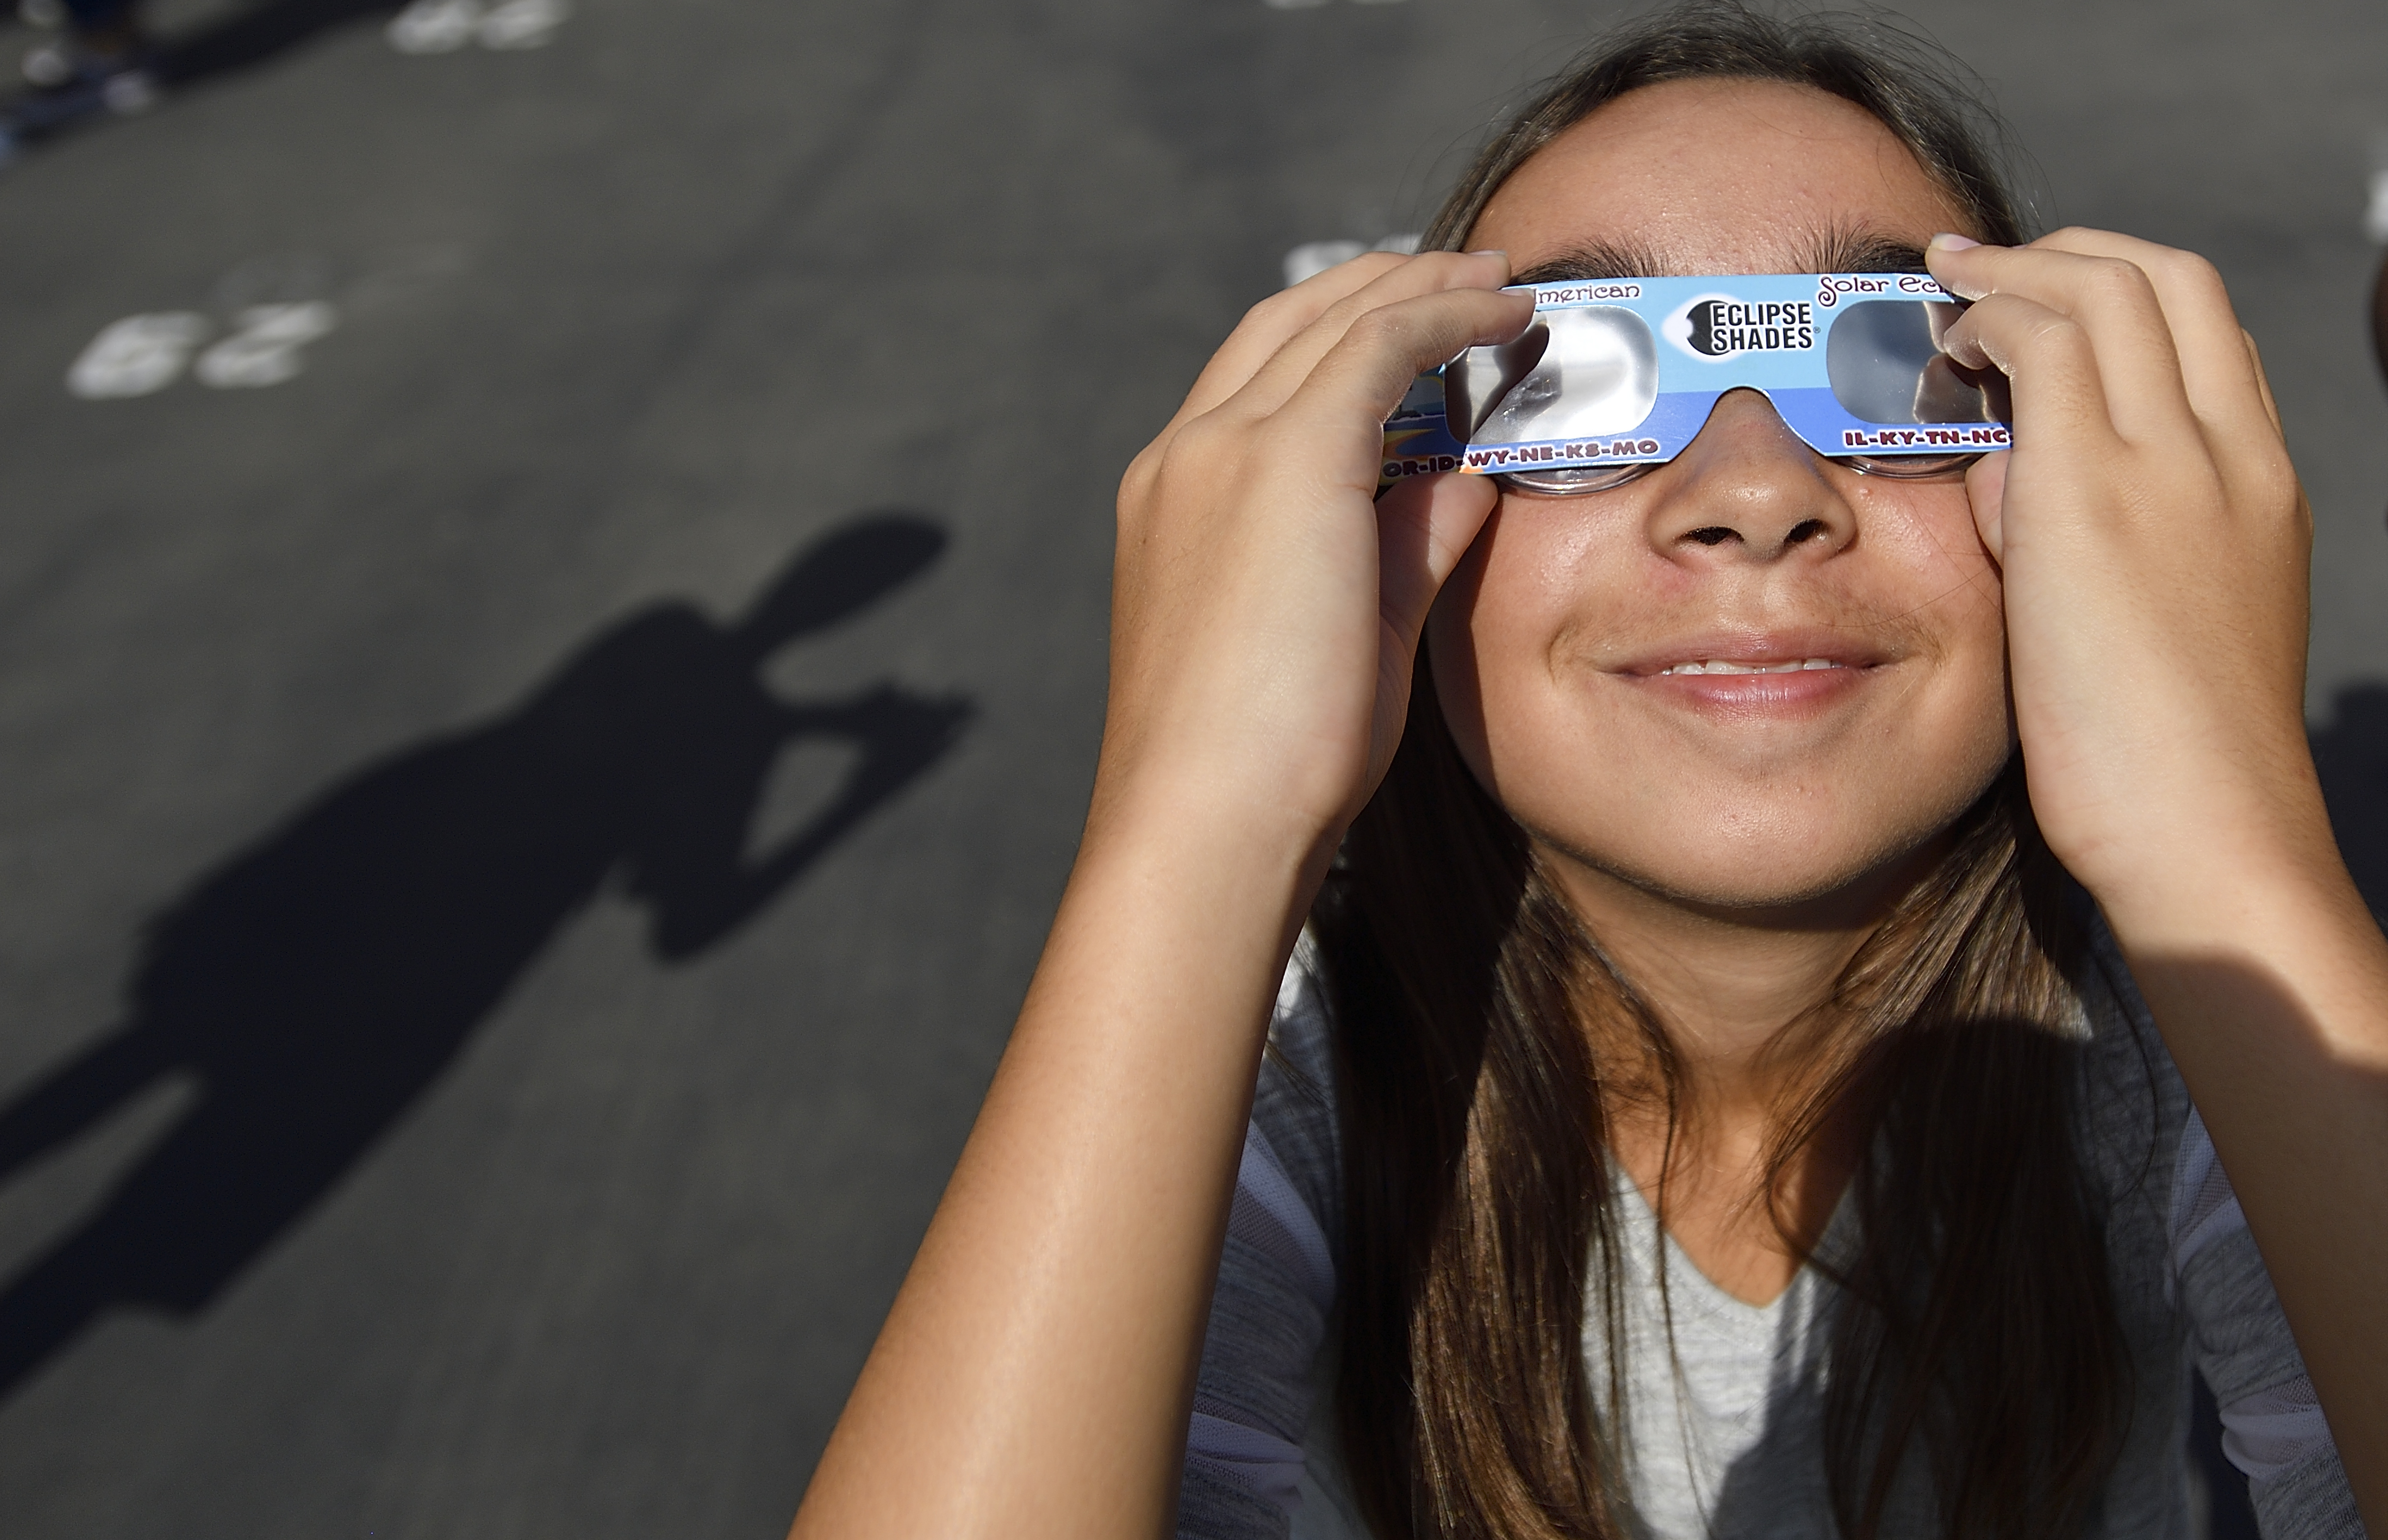 Special glasses to look at the partial solar eclipse. (Photo by Jeff Gritchen/Orange County Register via Getty Images)